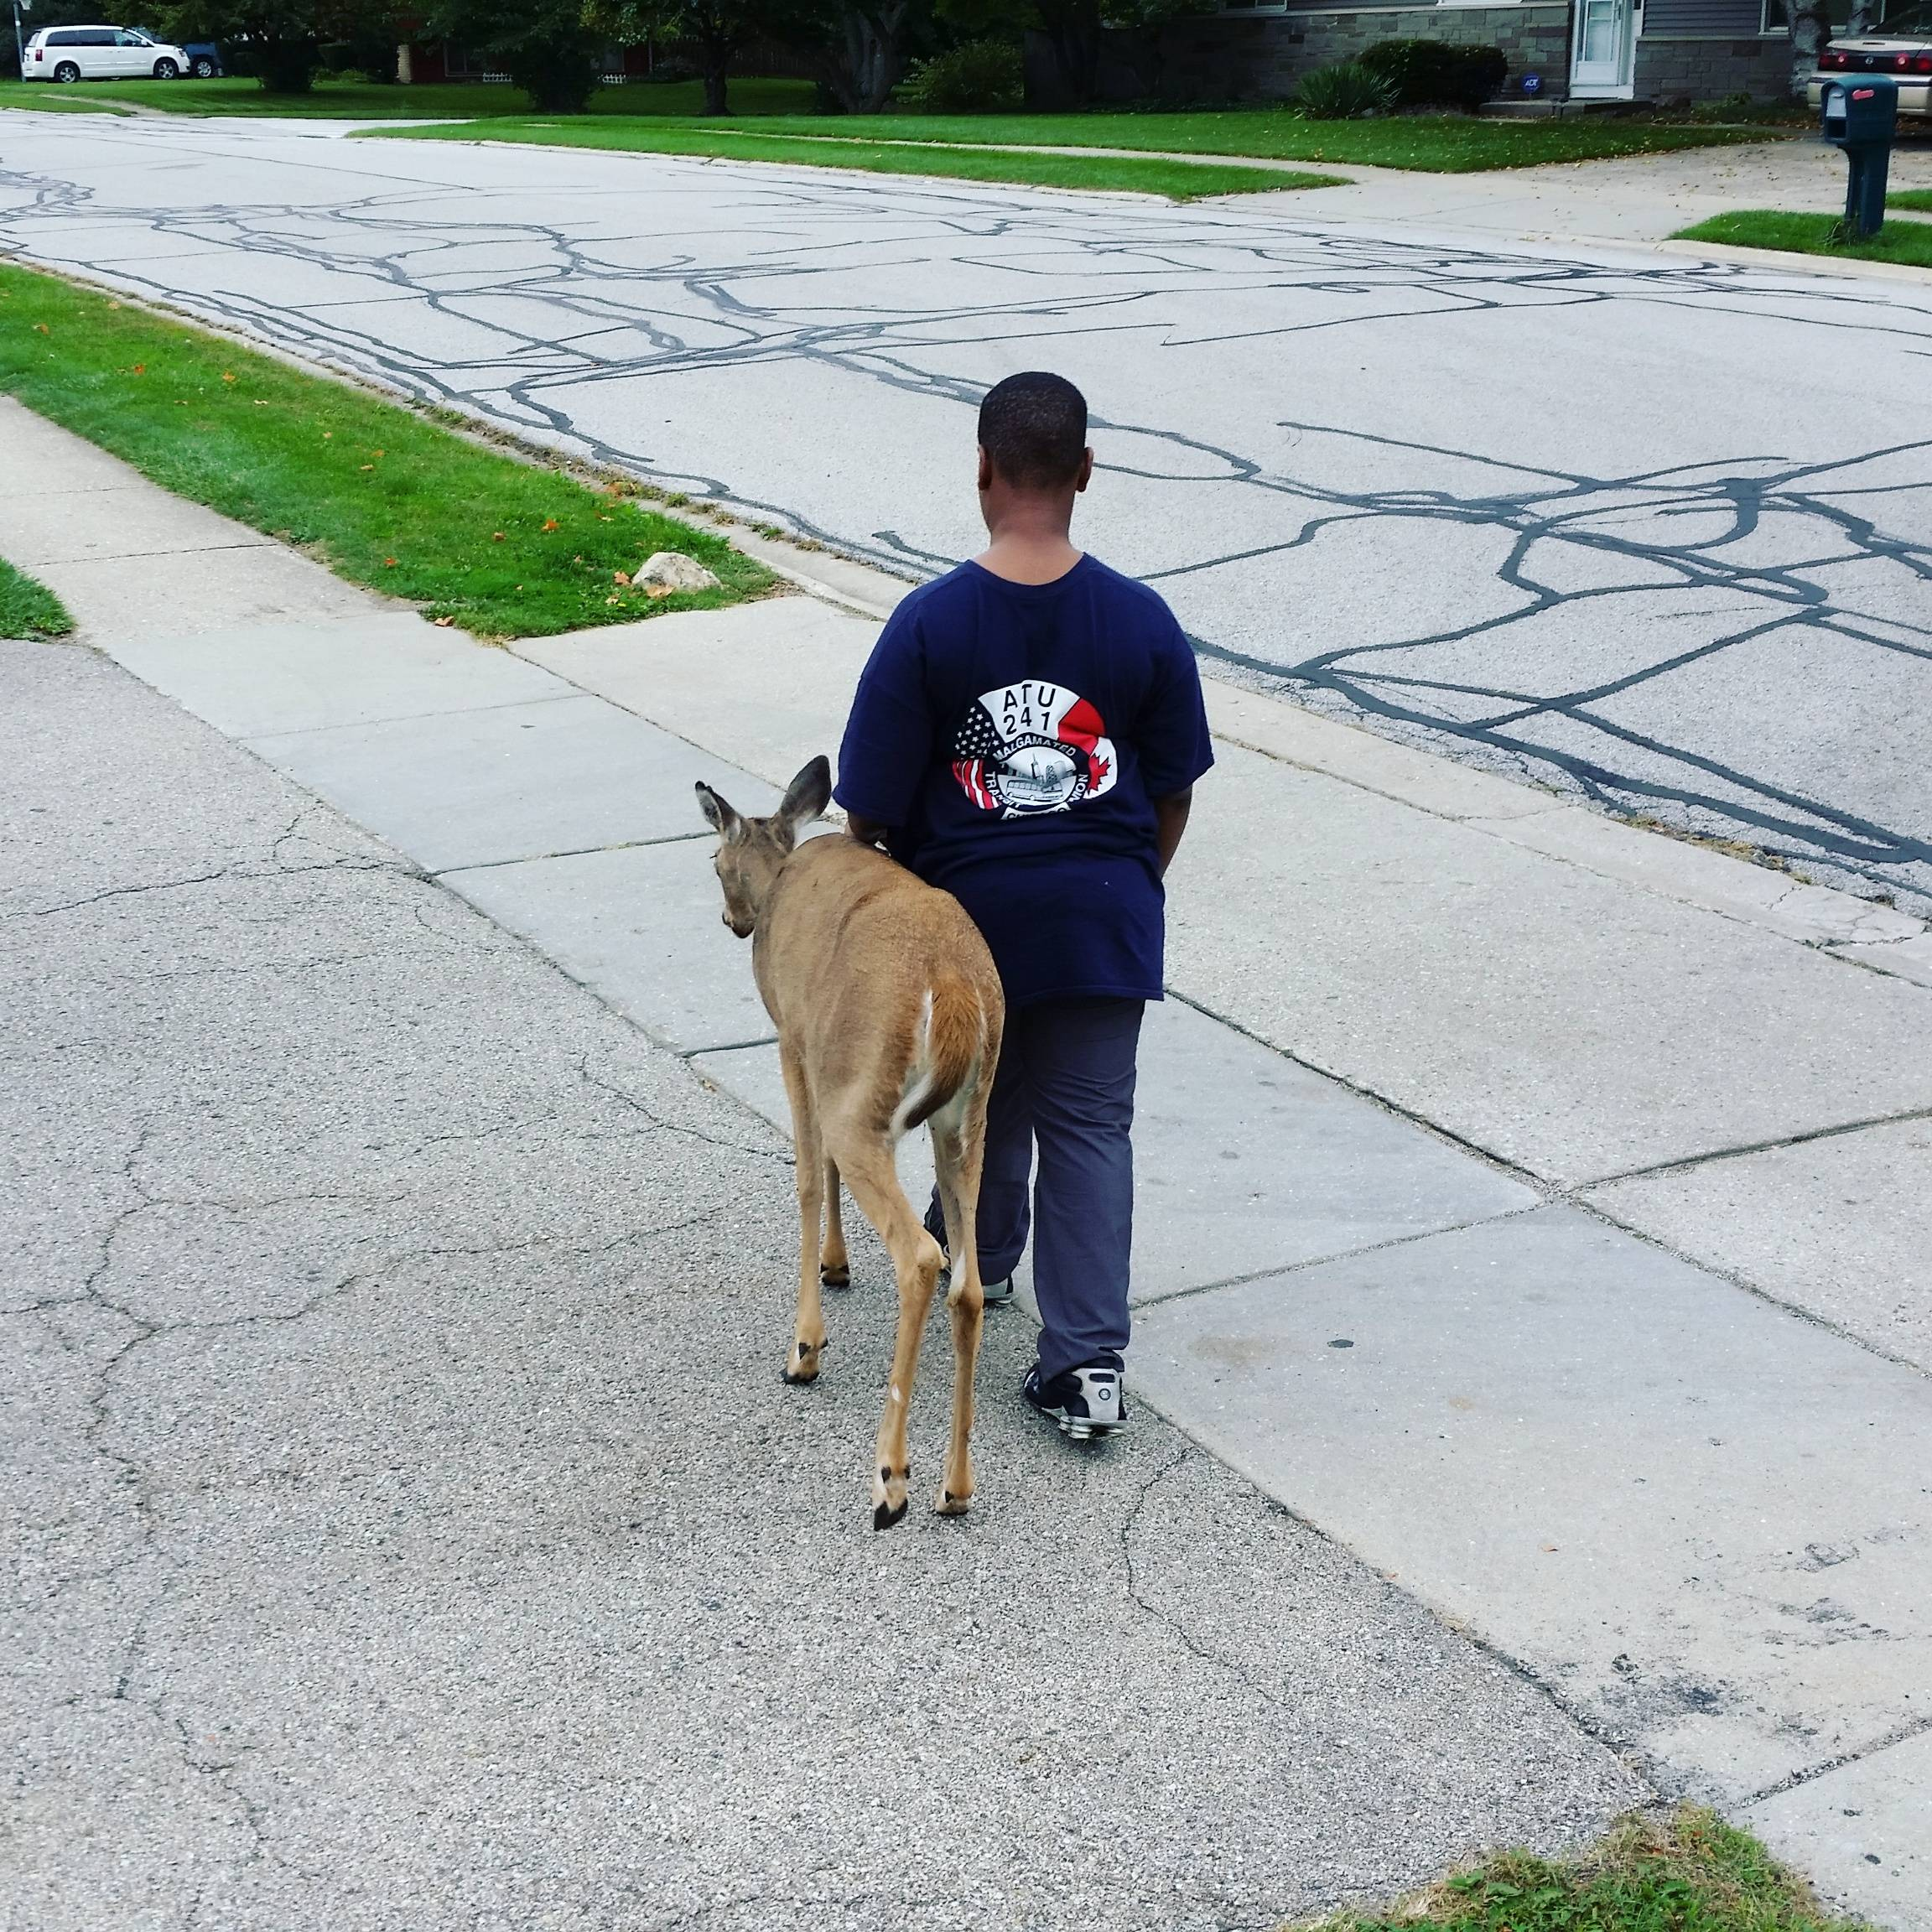 This Heartwarming Photo Of A Boy Helping A Blind Deer To Eat Has Gone Viral 1SAeoTU